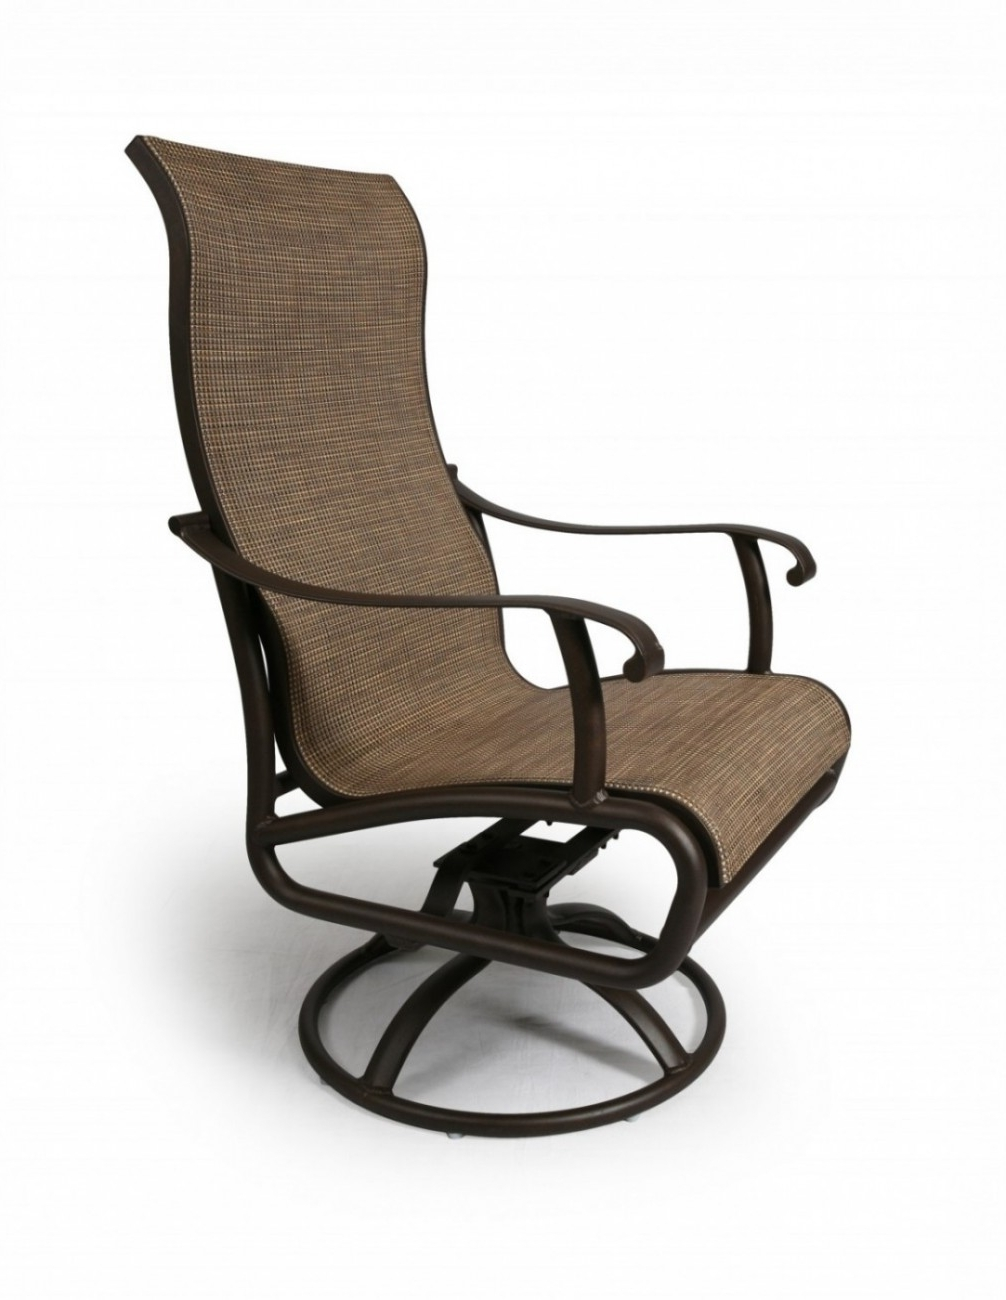 Patio Sling Rocking Chairs Throughout Most Up To Date Scarsdale Sling Swivel Rocker (View 9 of 15)